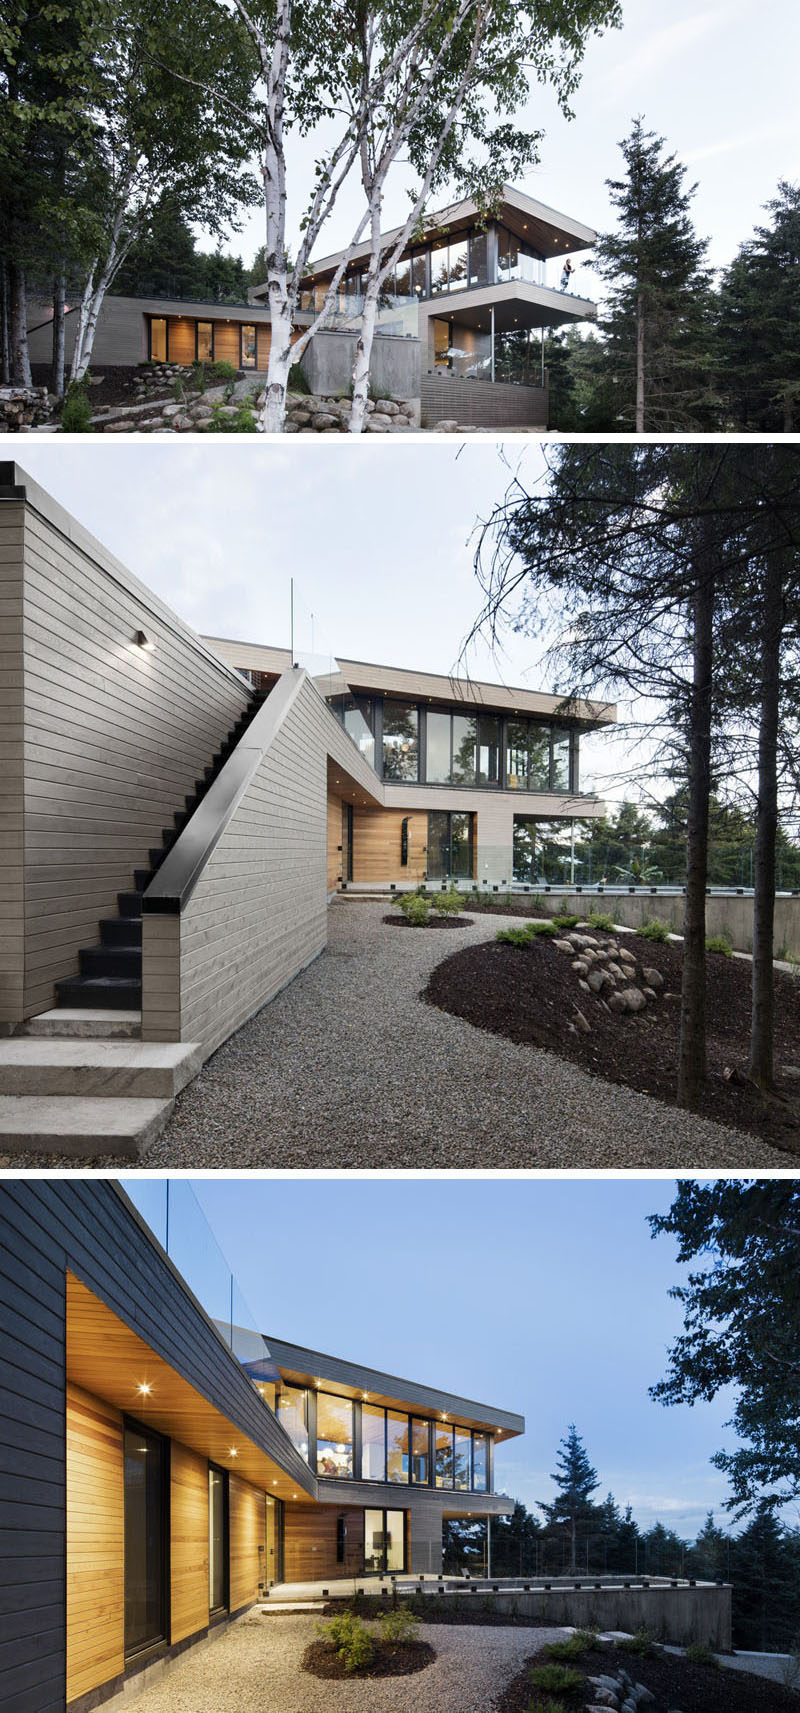 modern-house-in-forest-201216-457-09